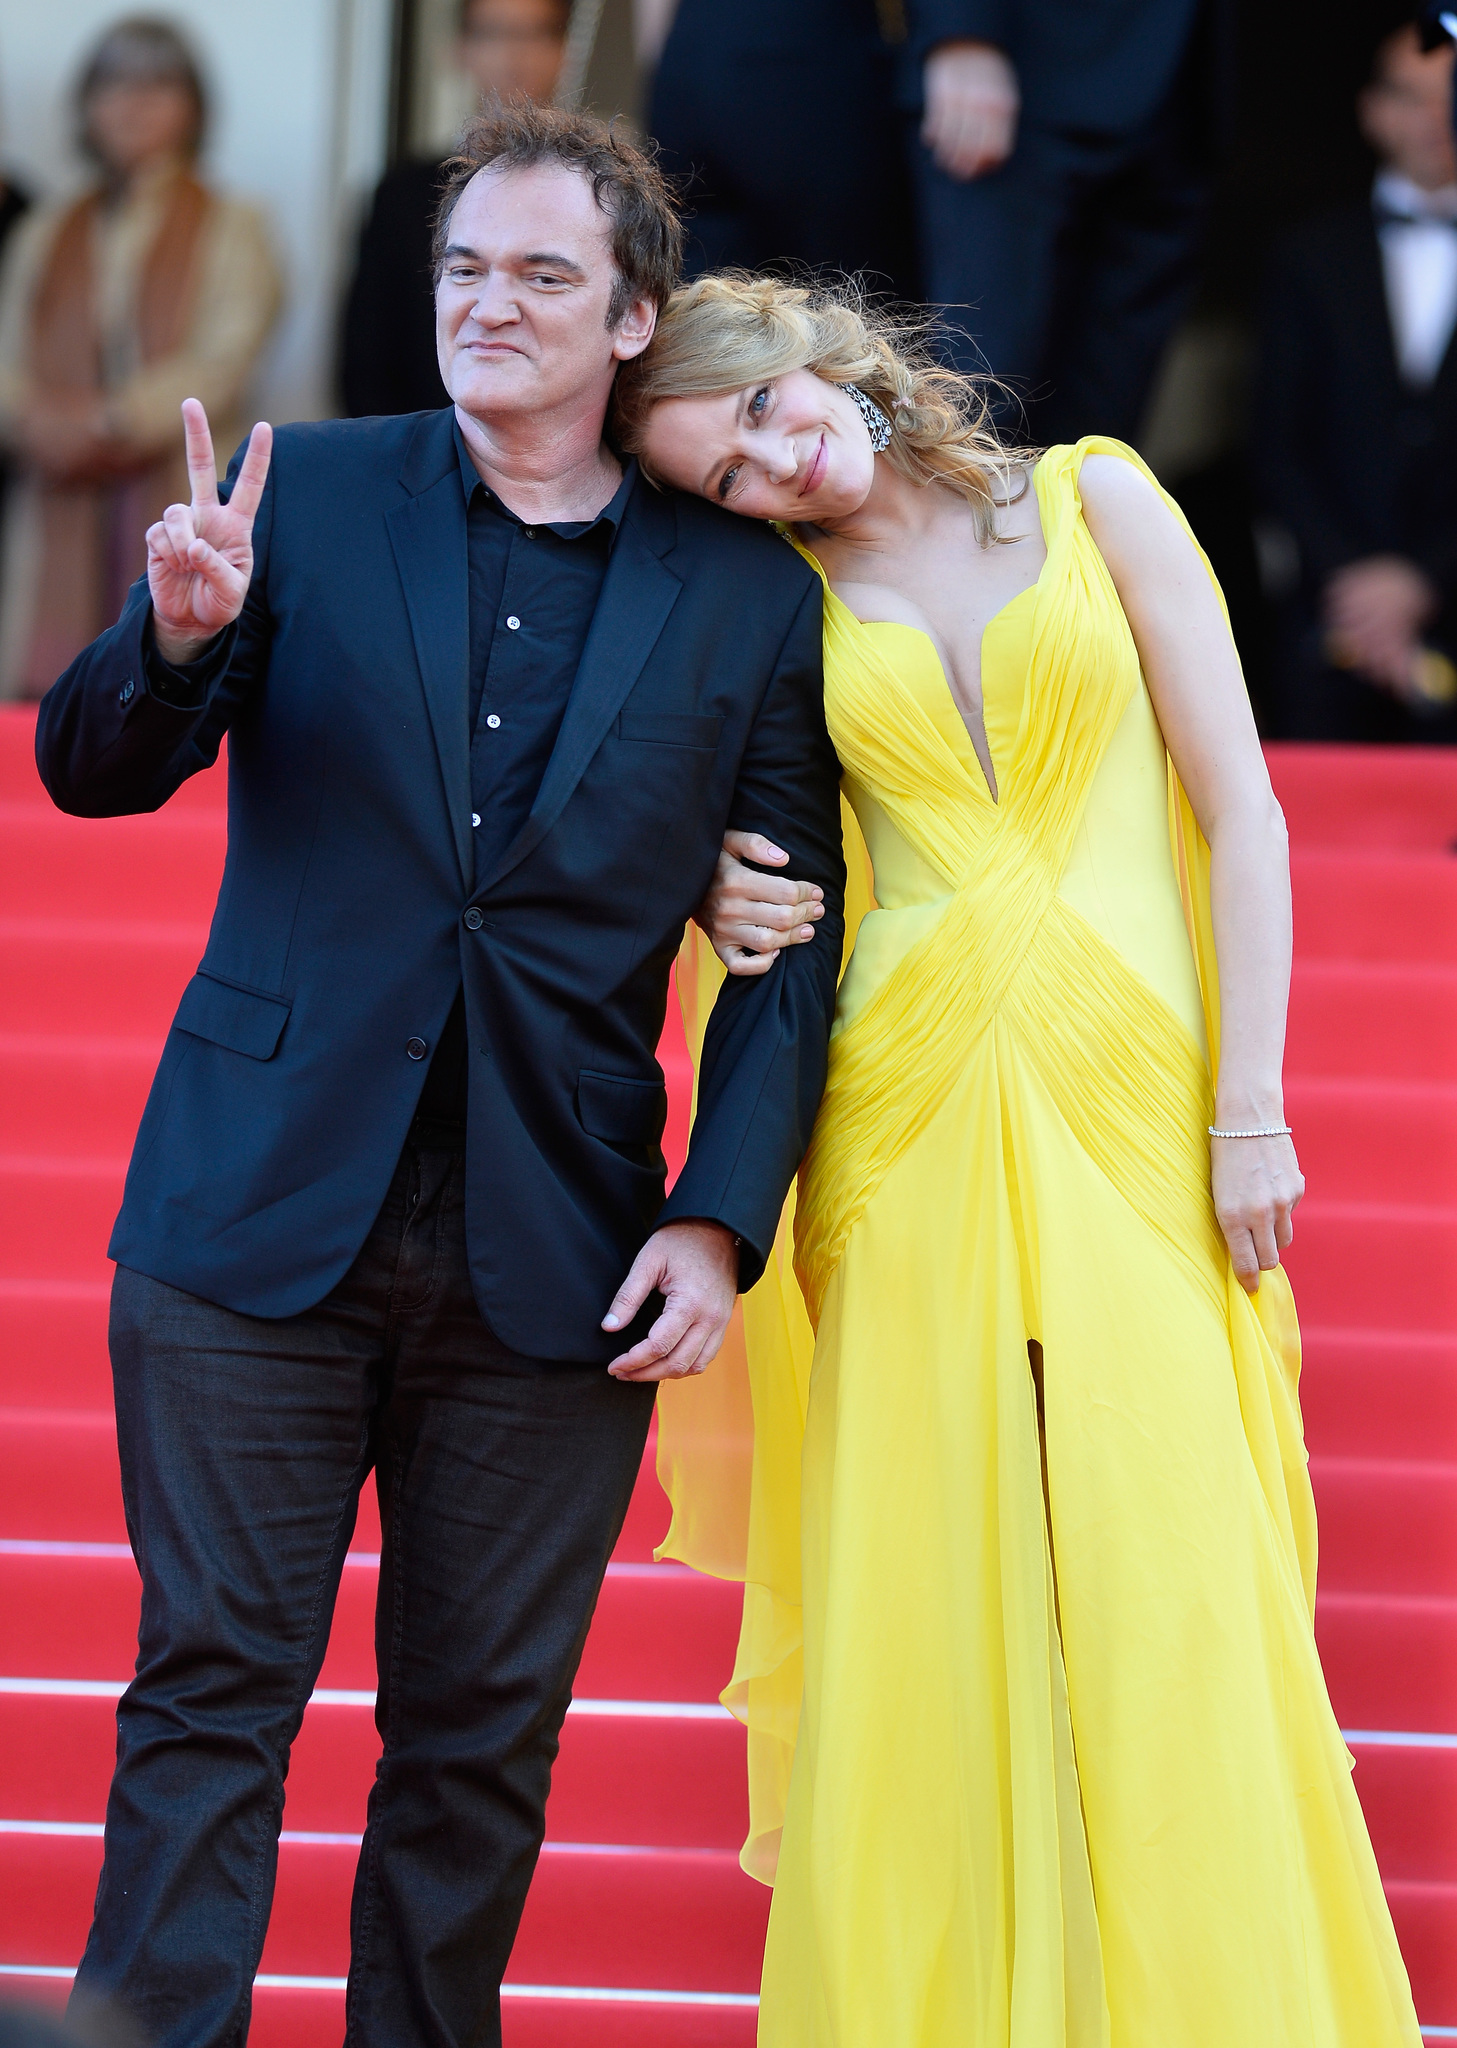 """Quentin Tarantino and Uma Thurman attend the """"Clouds Of Sils Maria"""" premiere during the 67th Annual Cannes Film Festival on May 23, 2014 in Cannes, France."""